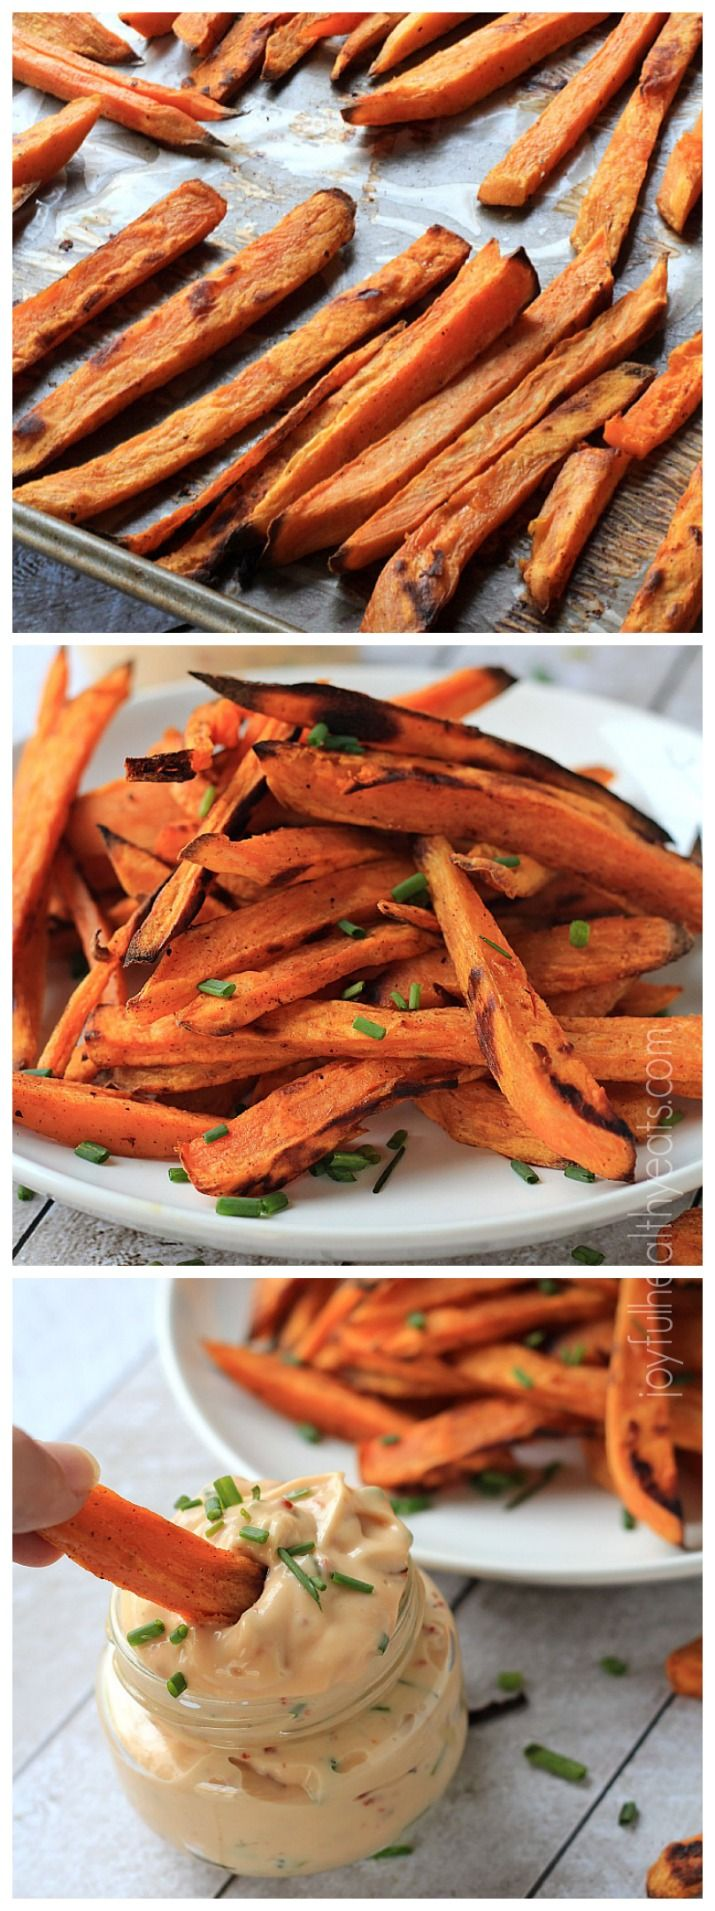 | Crispy Baked Sweet Potato Fries with Chipotle Aioli |